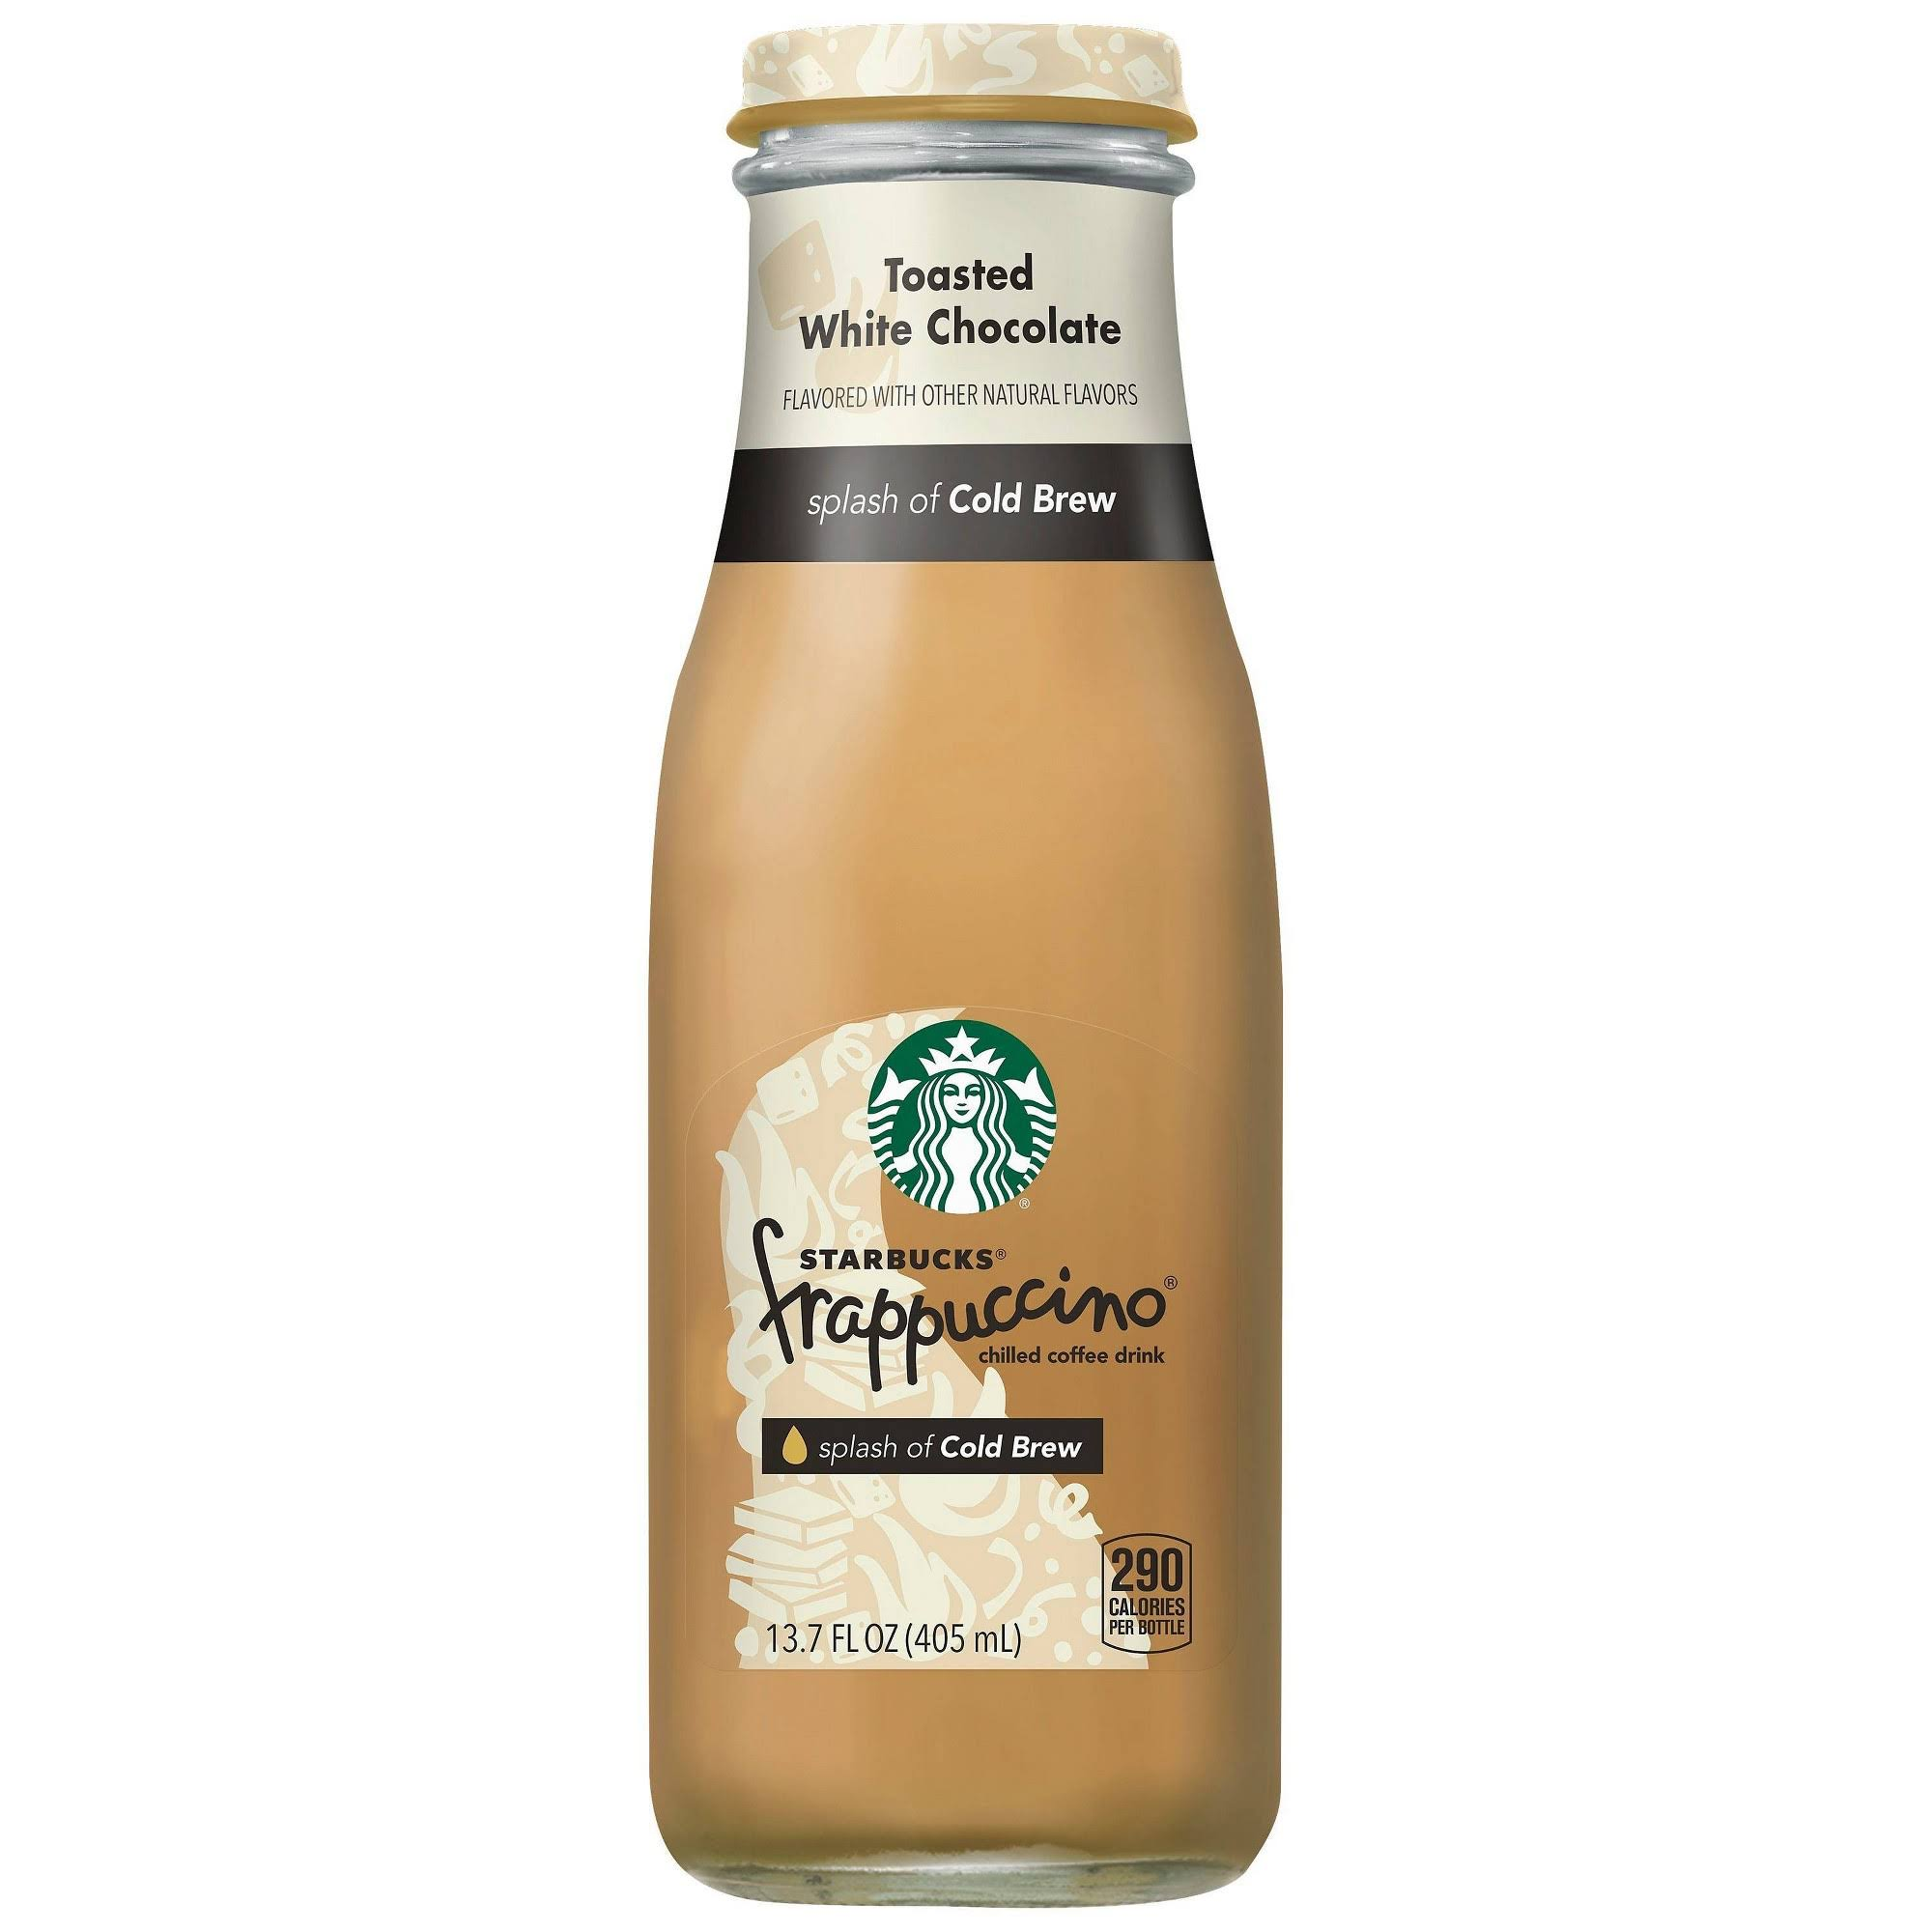 Starbucks Frappuccino Toasted White Chocolate Chilled Coffee Drink - 405ml